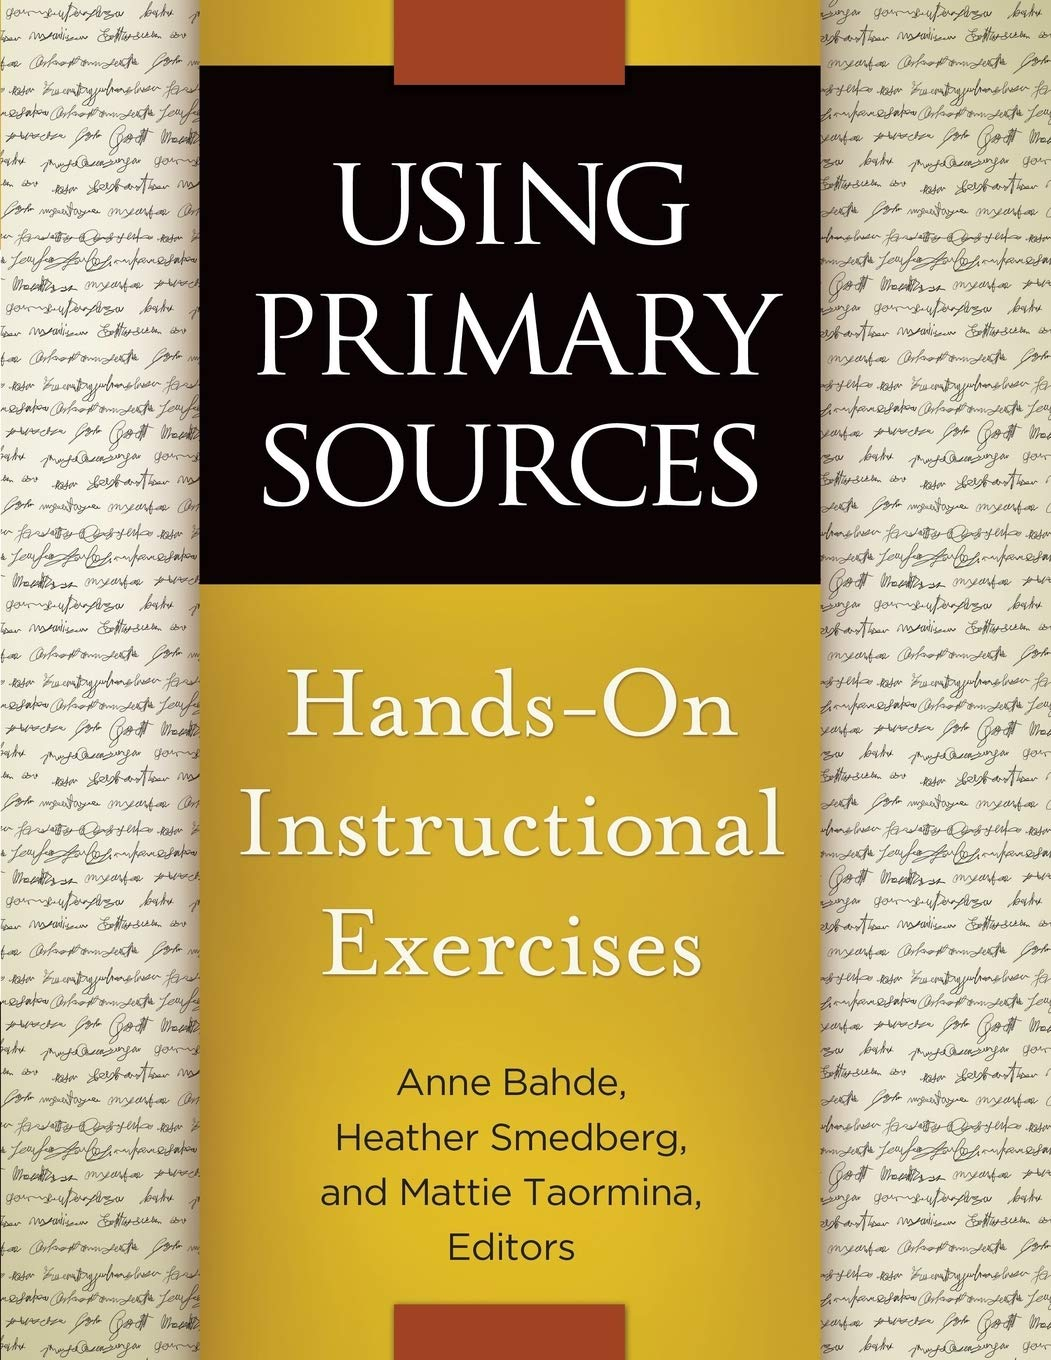 Image OfUsing Primary Sources: Hands-On Instructional Exercises